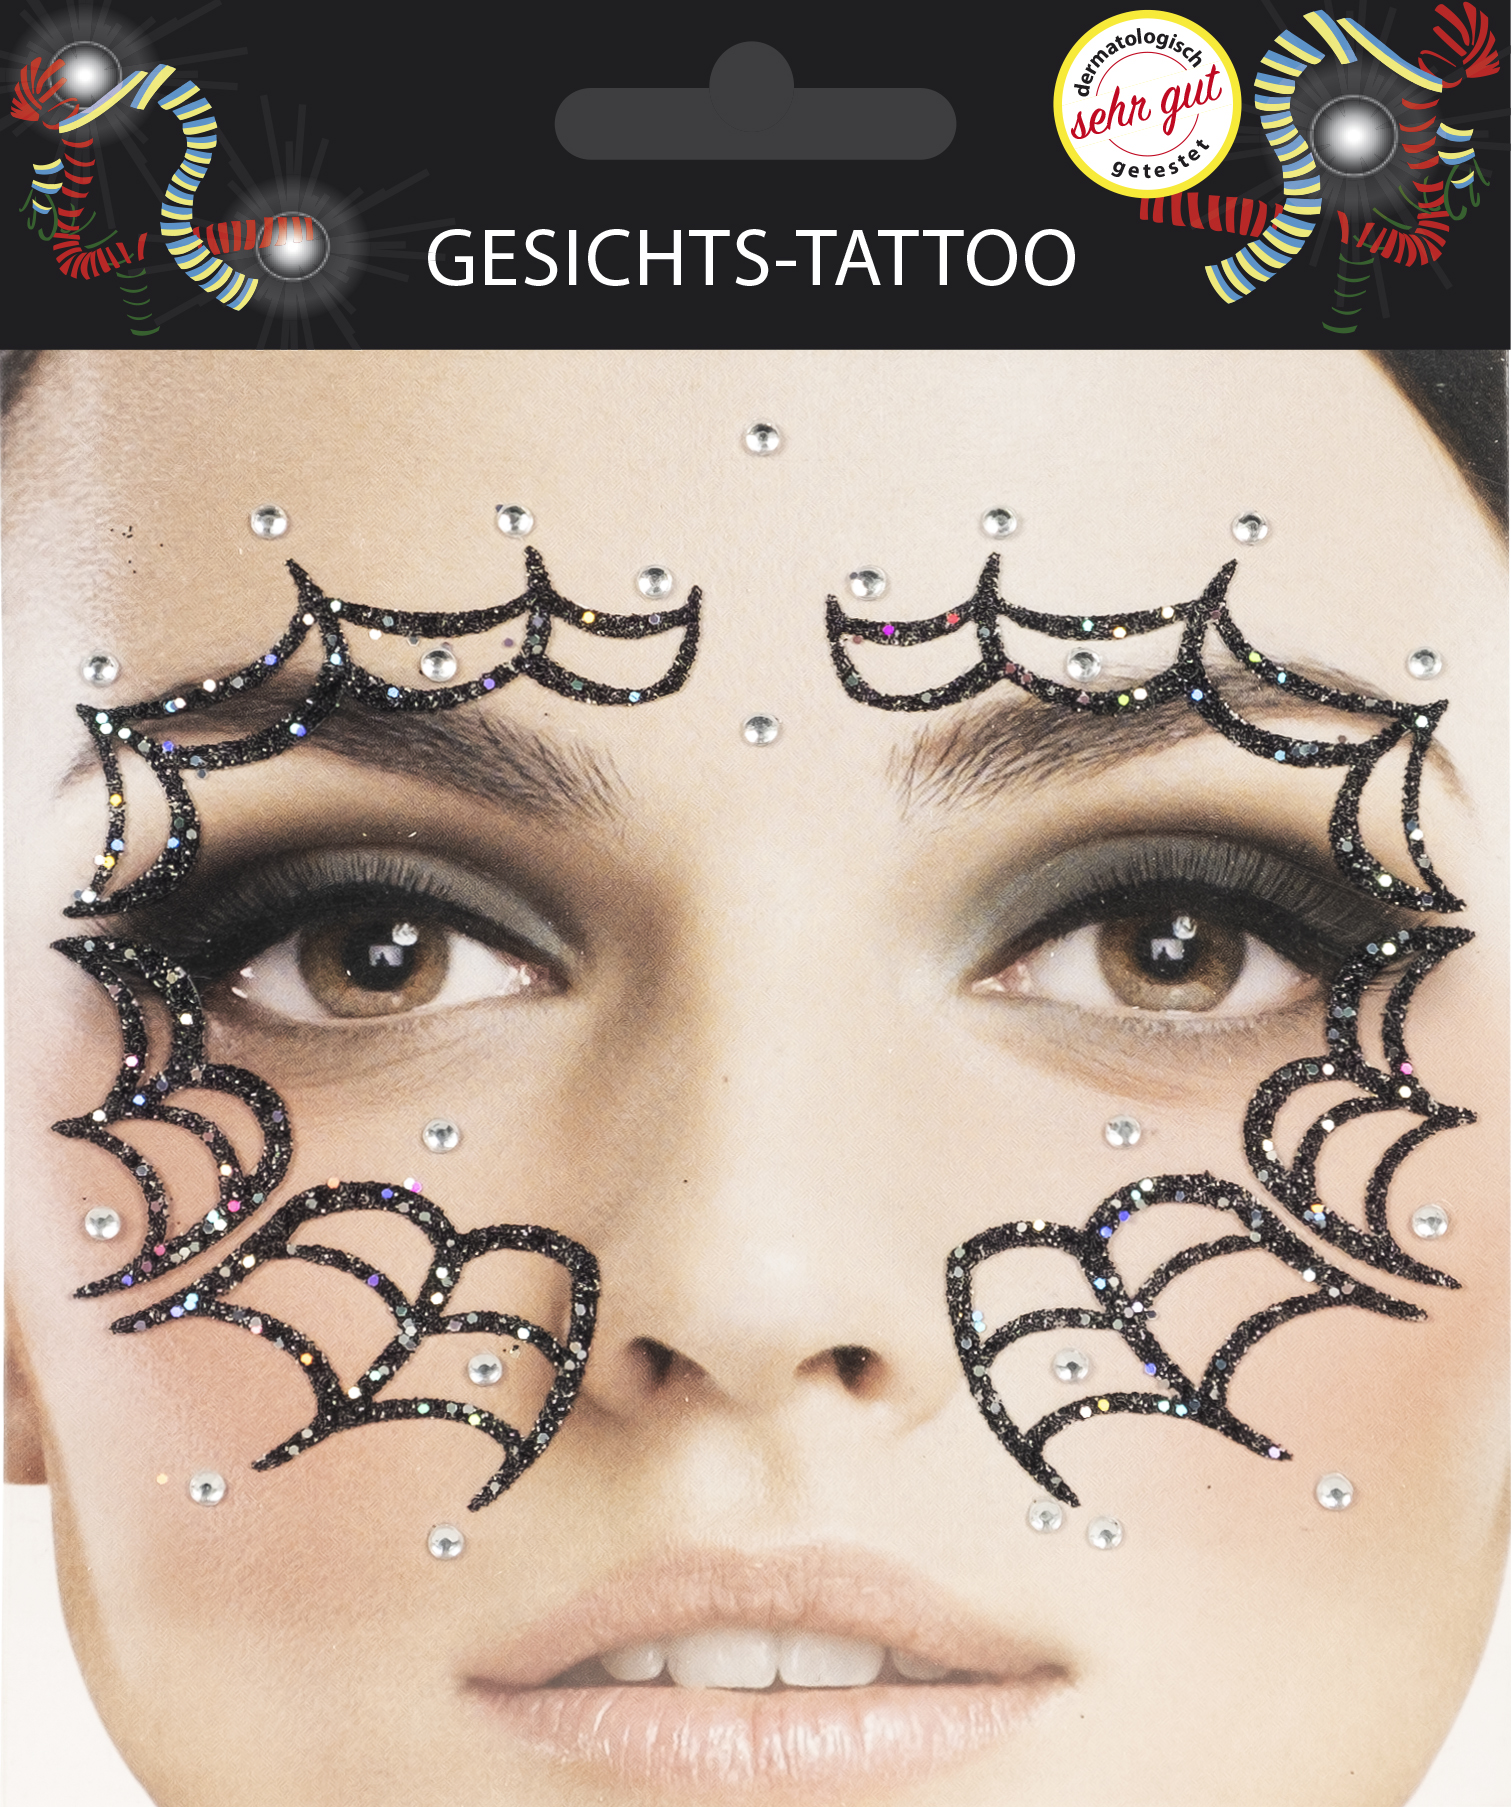 Gesichts-Tattoo Halloween Spinnennetz